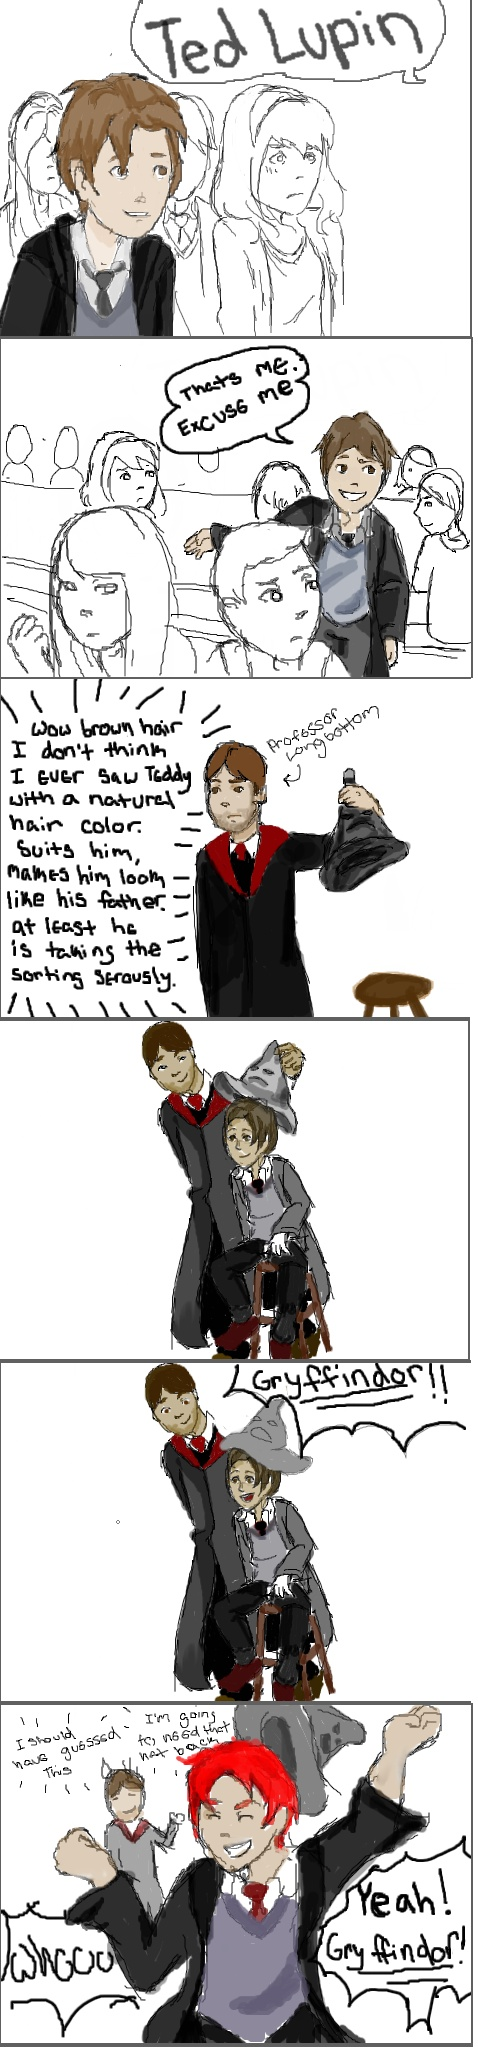 Teddy Lupin and the Sorting by DidxSomeonexSayxMad.deviantart.com on @deviantART XD